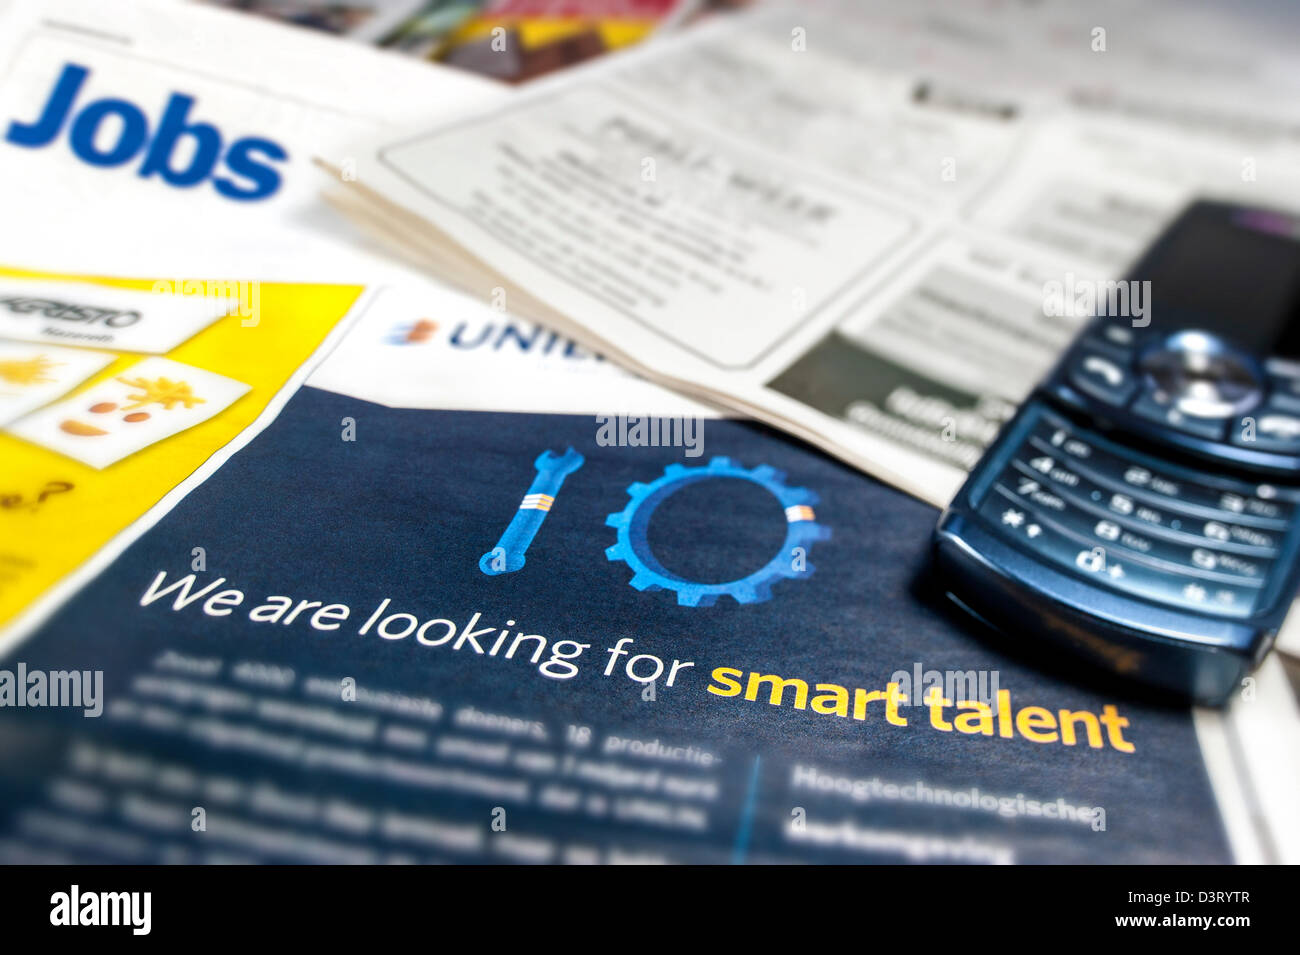 Cell phone and advertisements for jobs for unemployed workers on employment page in newspapers - Stock Image